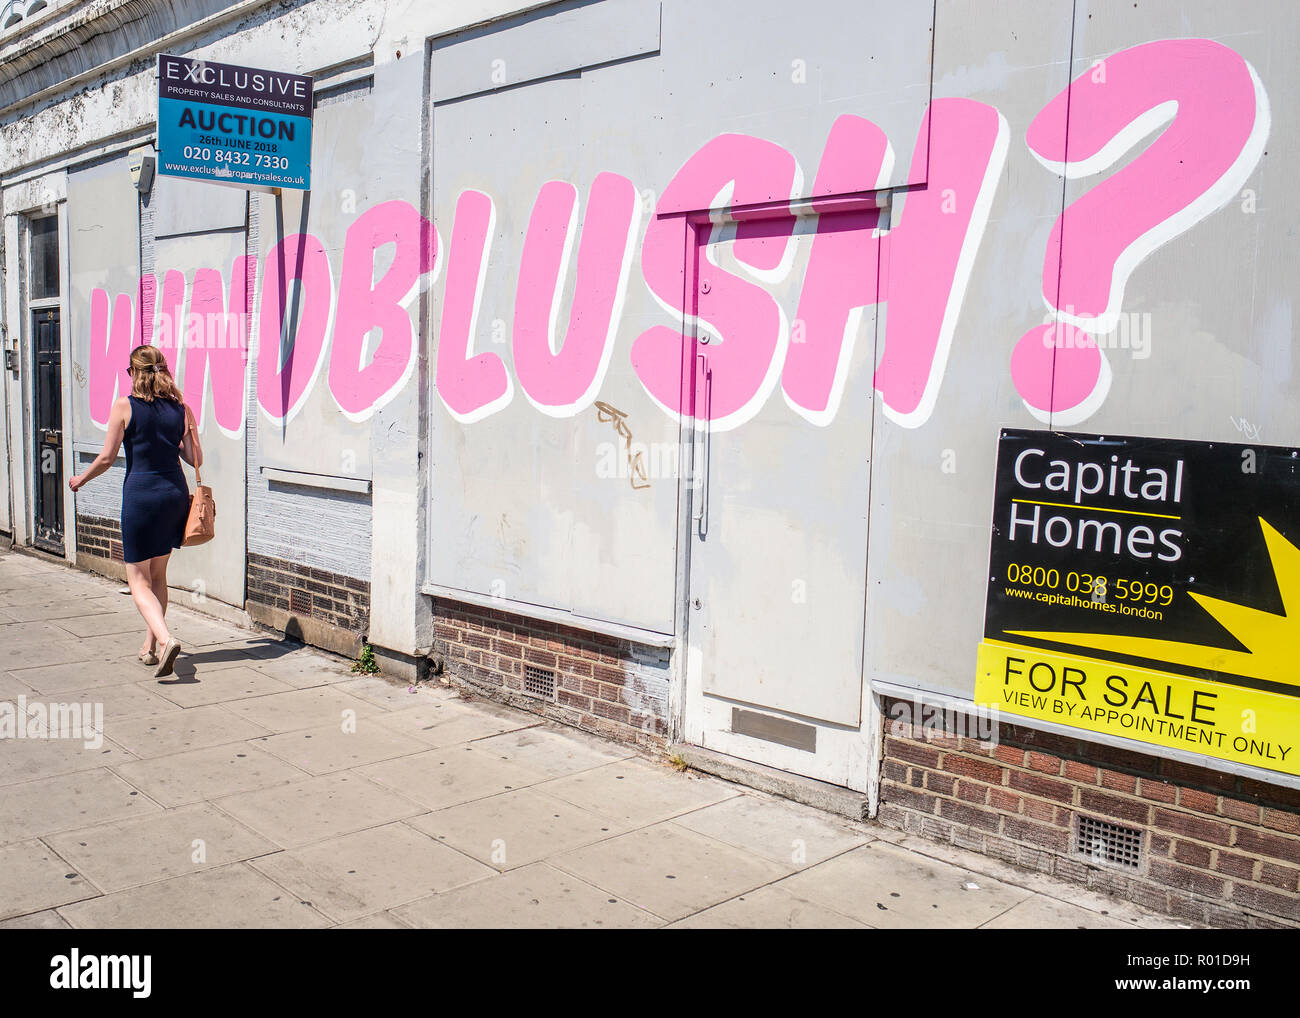 Windblush ? Graffiti Graffiti windrush par LDN Photo Stock